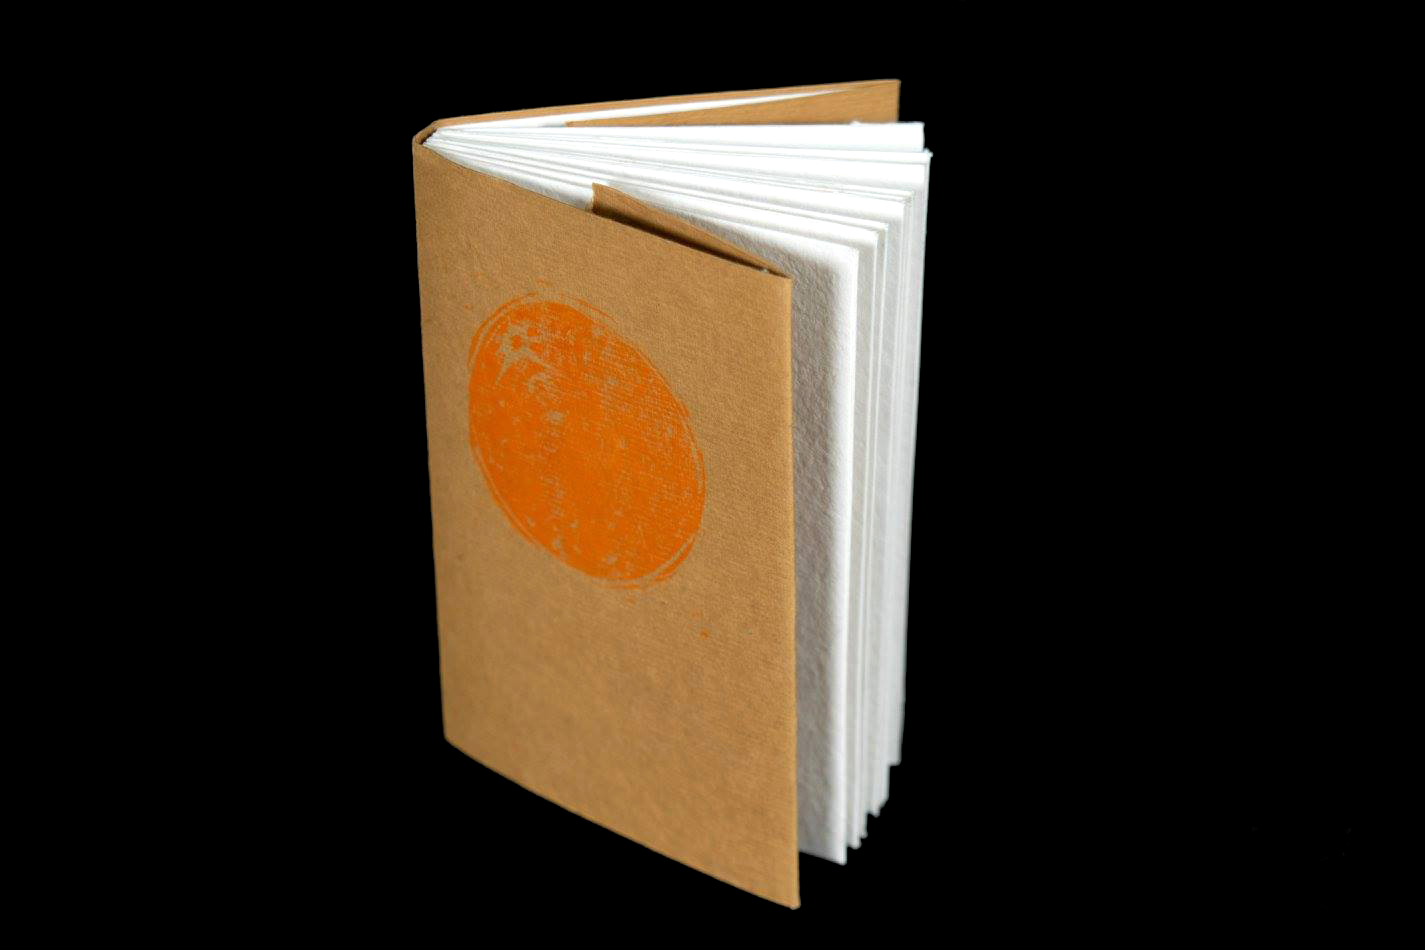 small artist book with brown cover featuring image of an orange